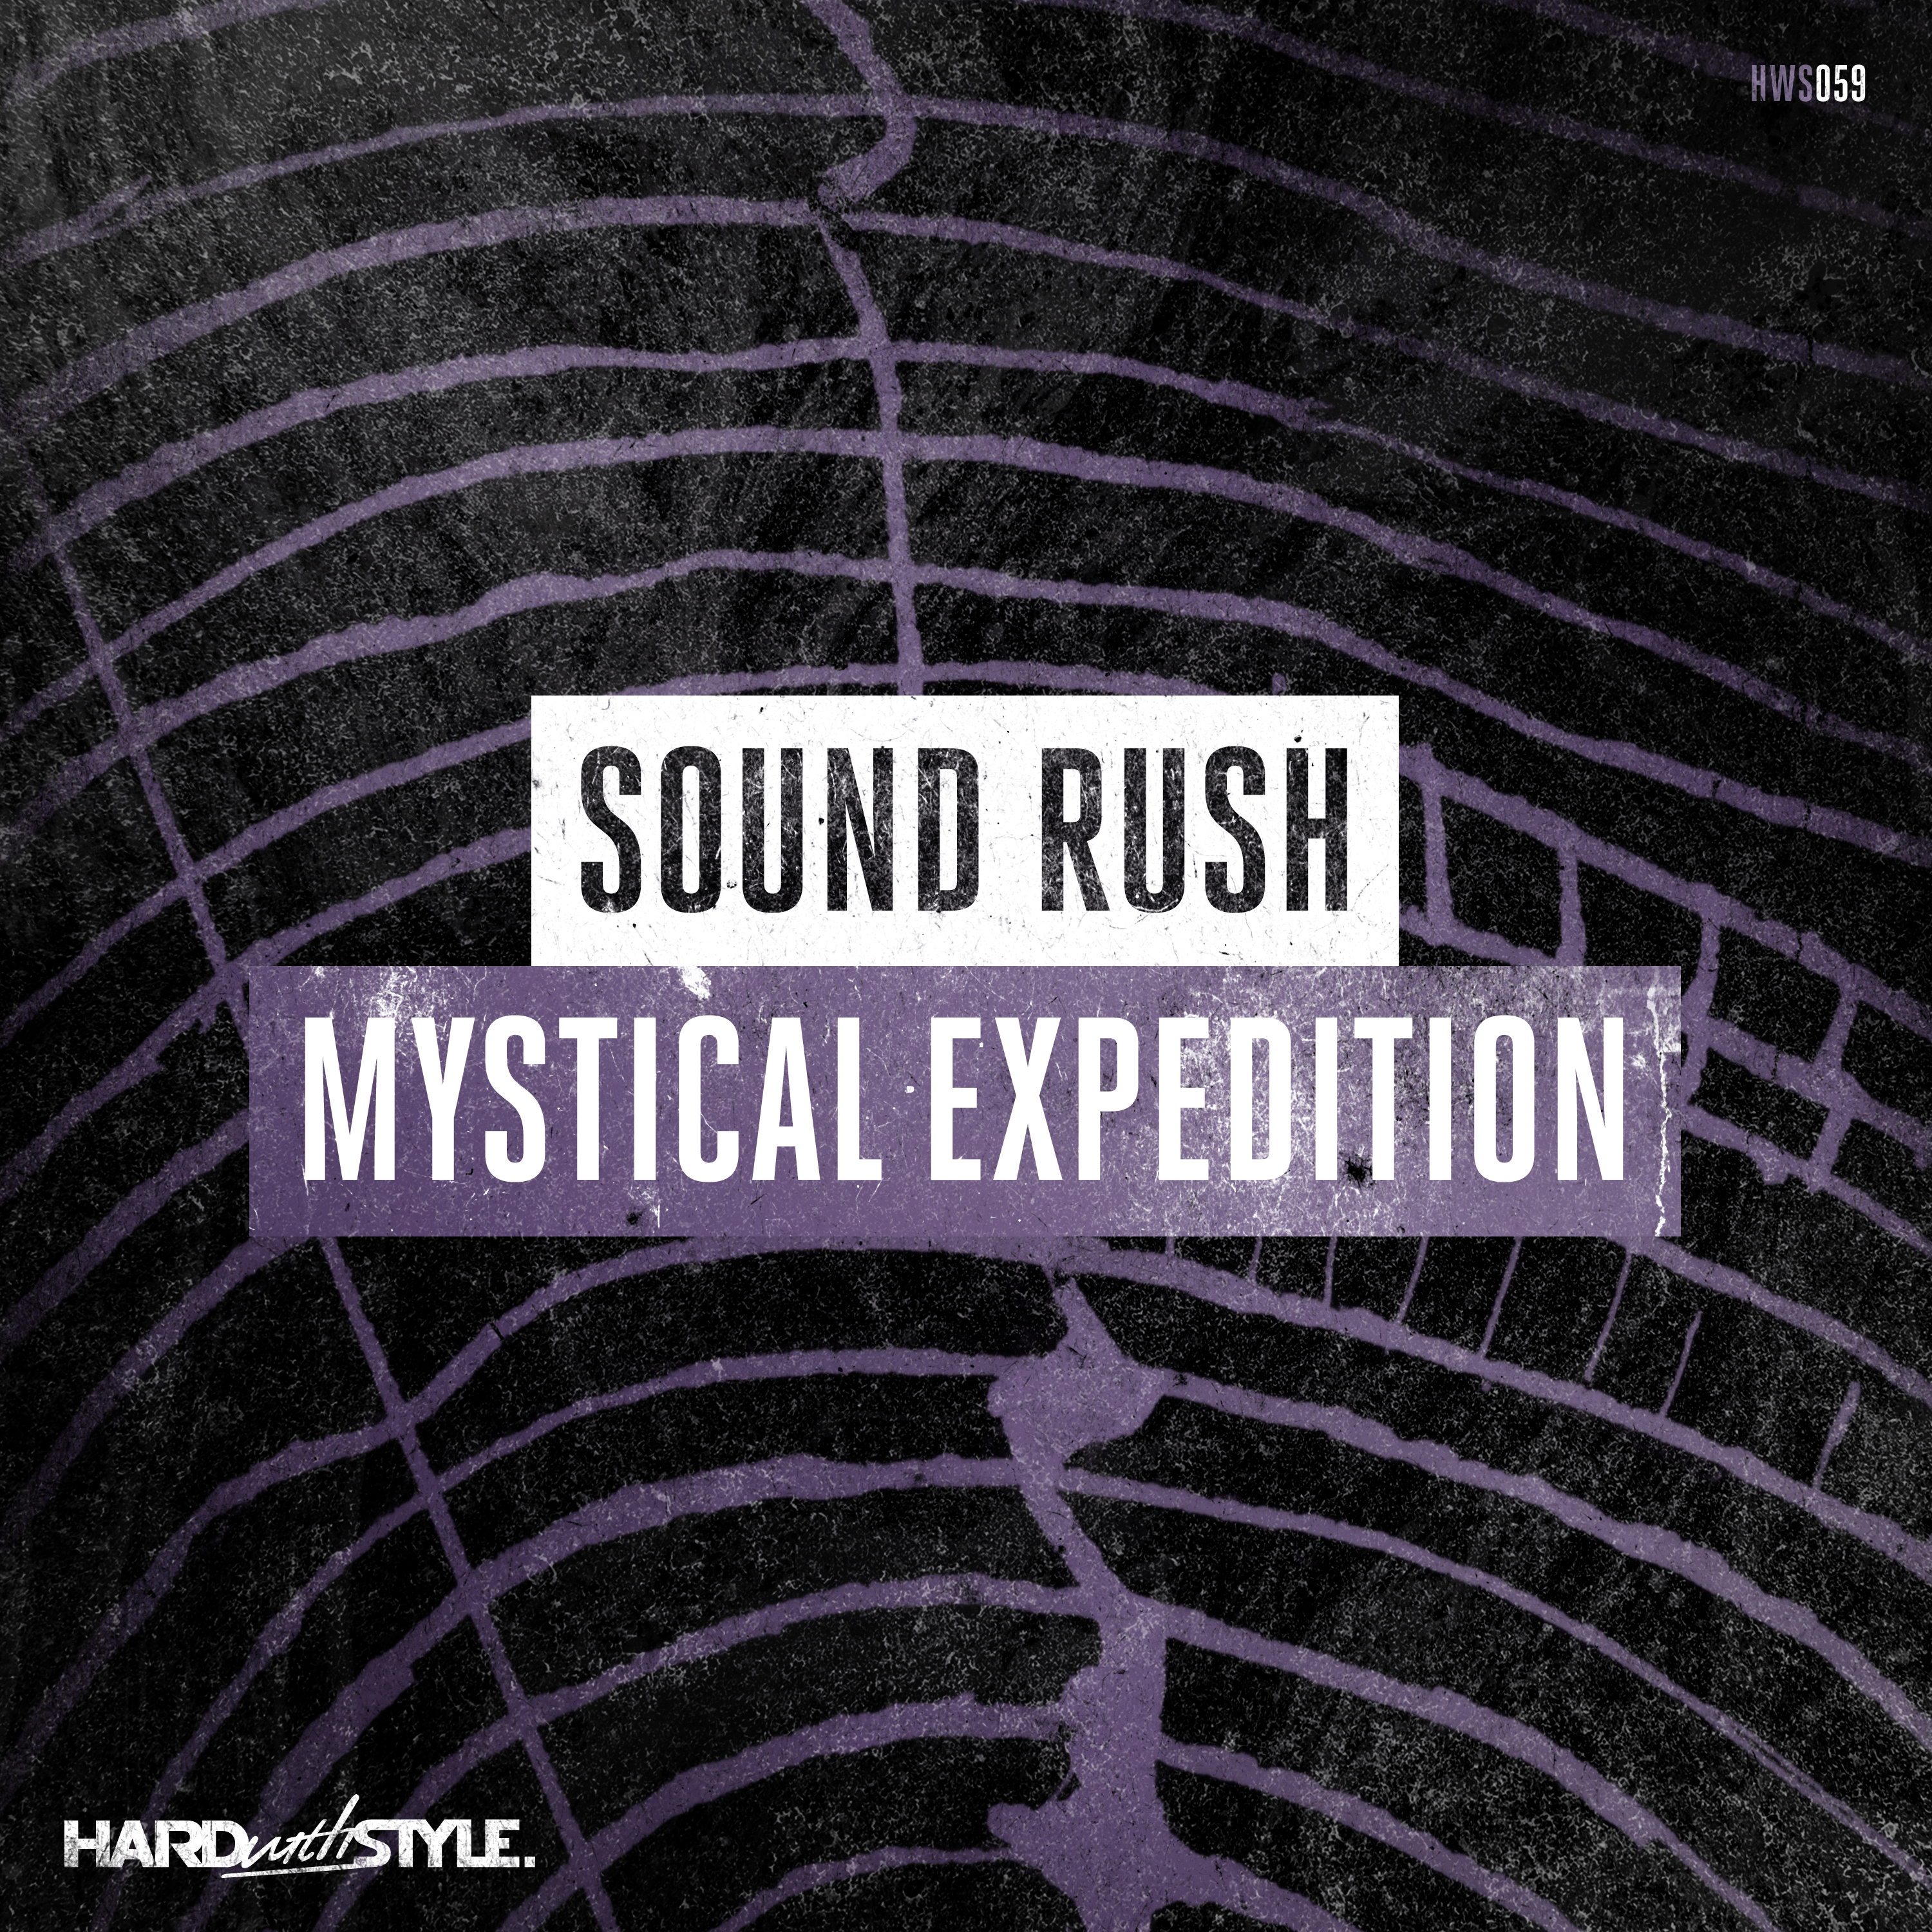 Sound Rush - Mystical Expedition [HARD WITH STYLE RECORDS] HWS059